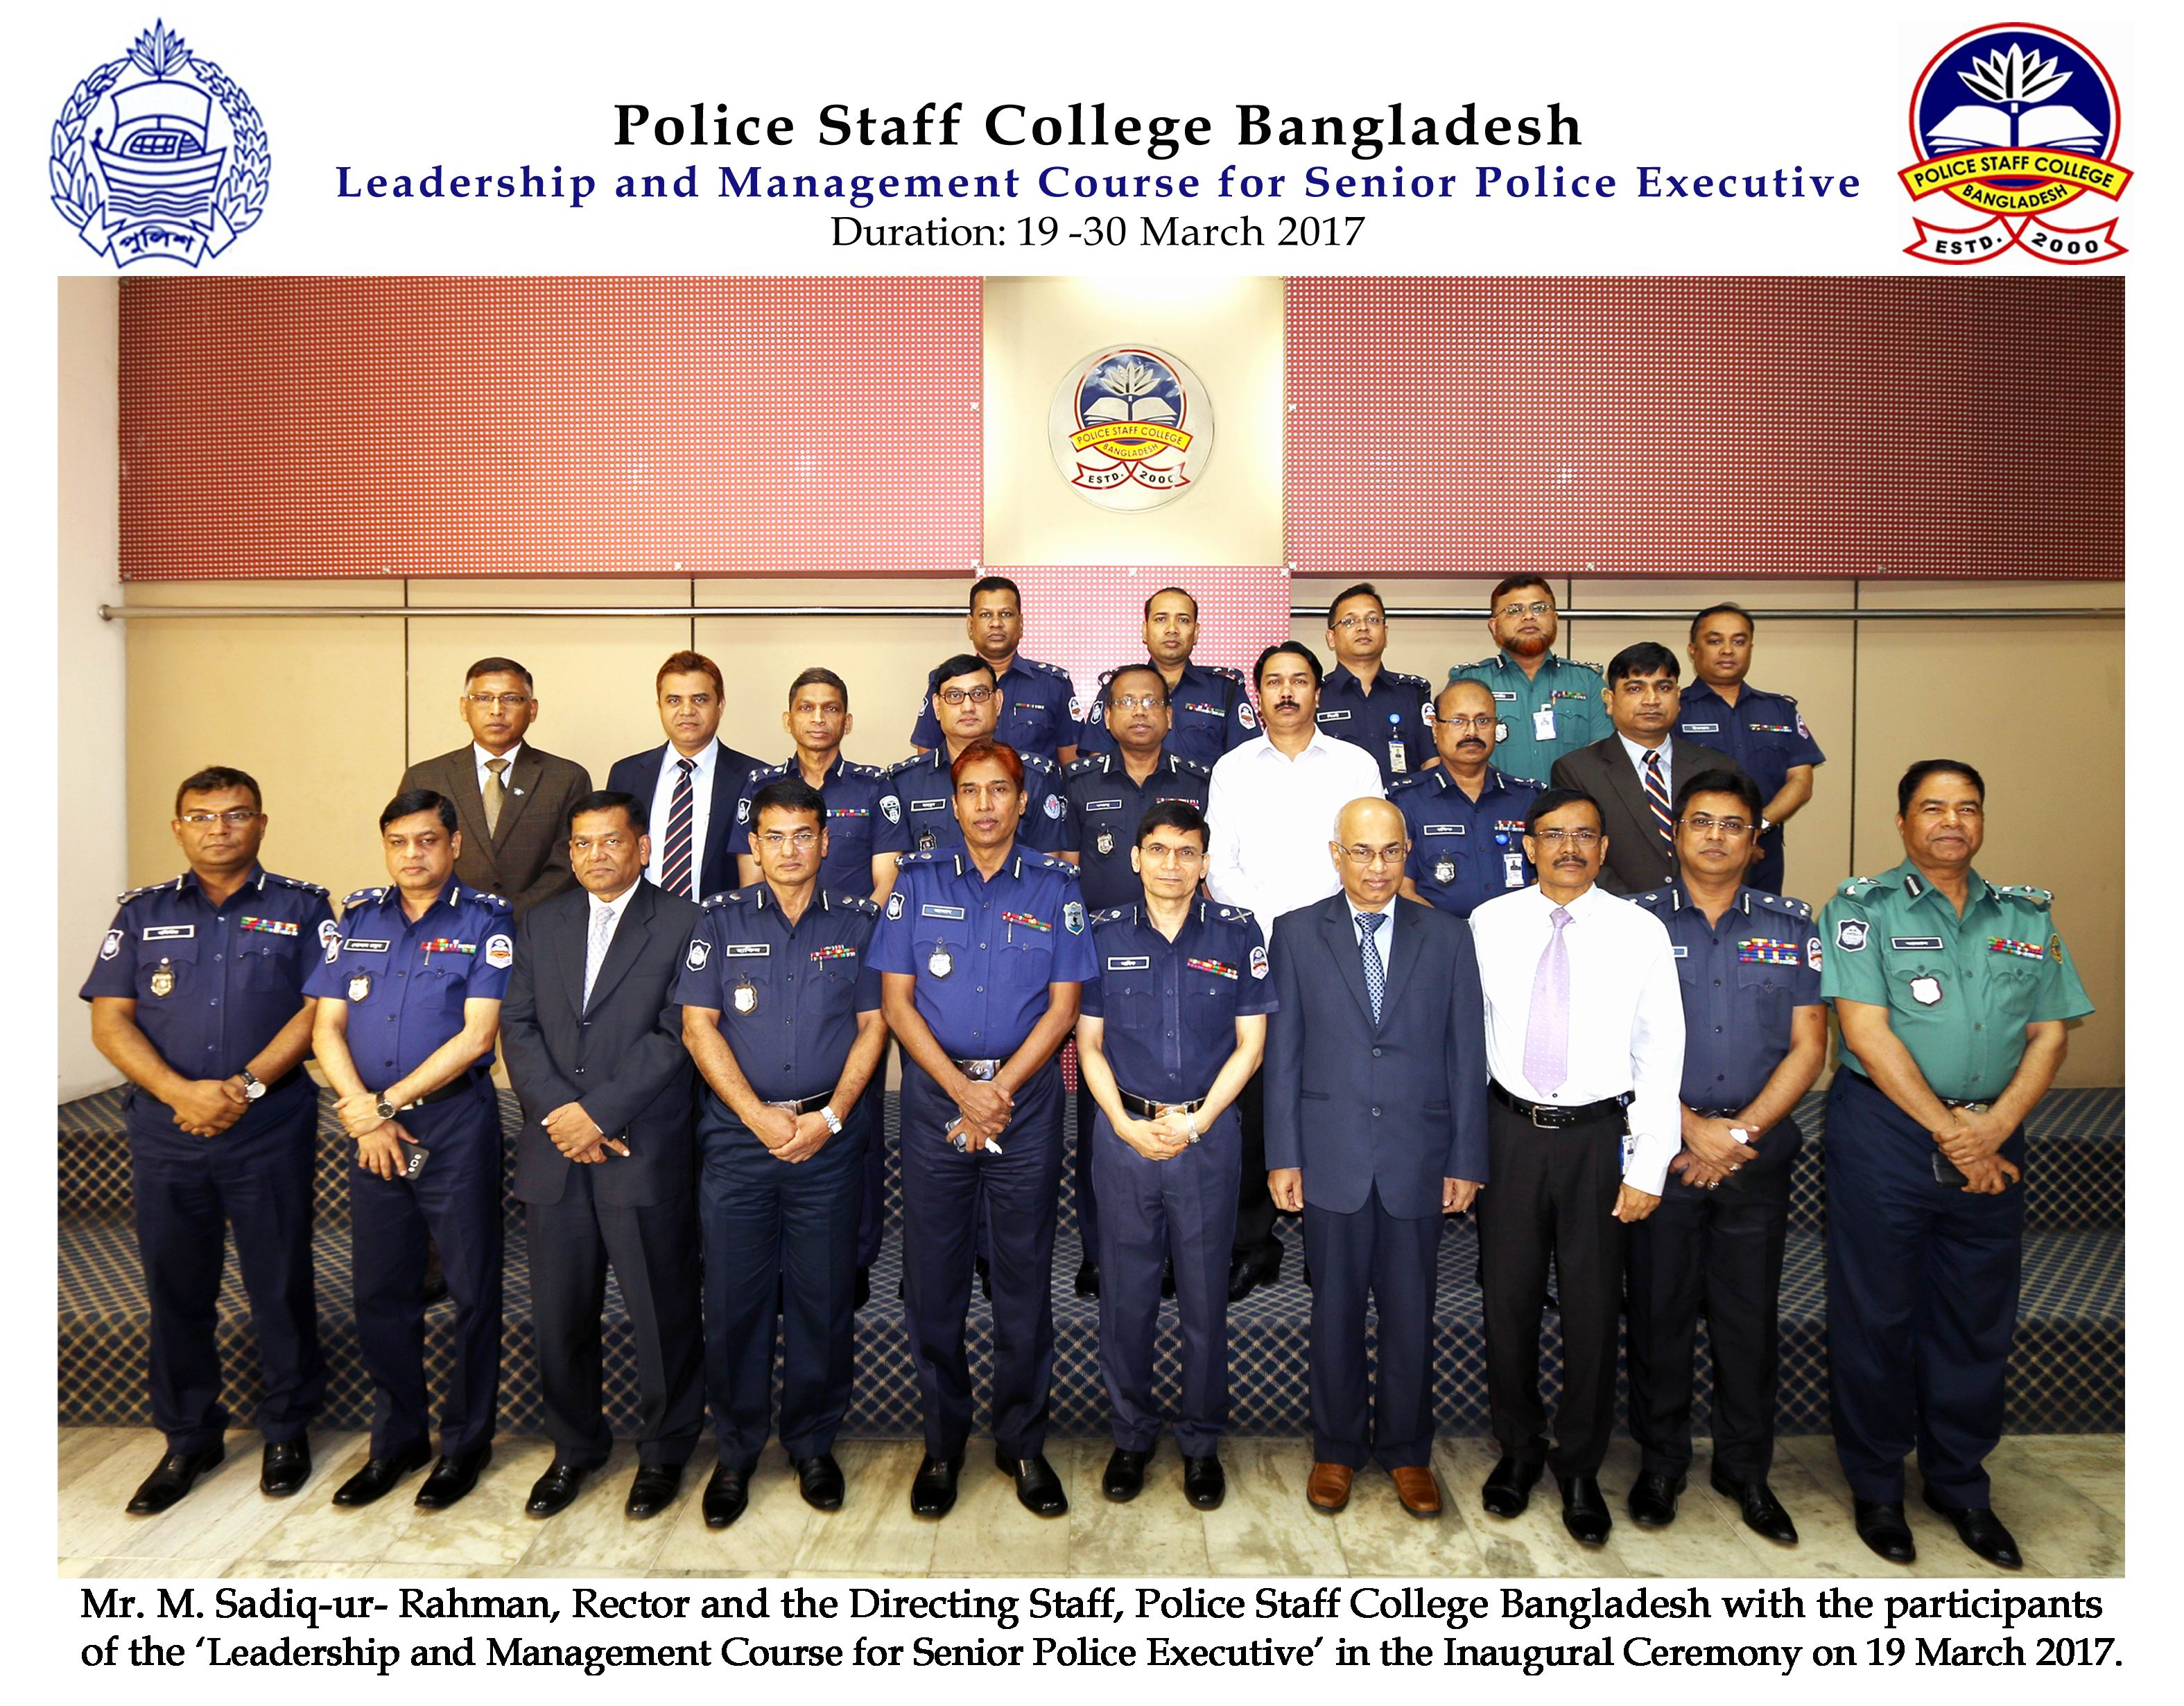 Participant of 2nd Leadership and Management Course for Senior Police Executive (DIG & Addl. DIG)